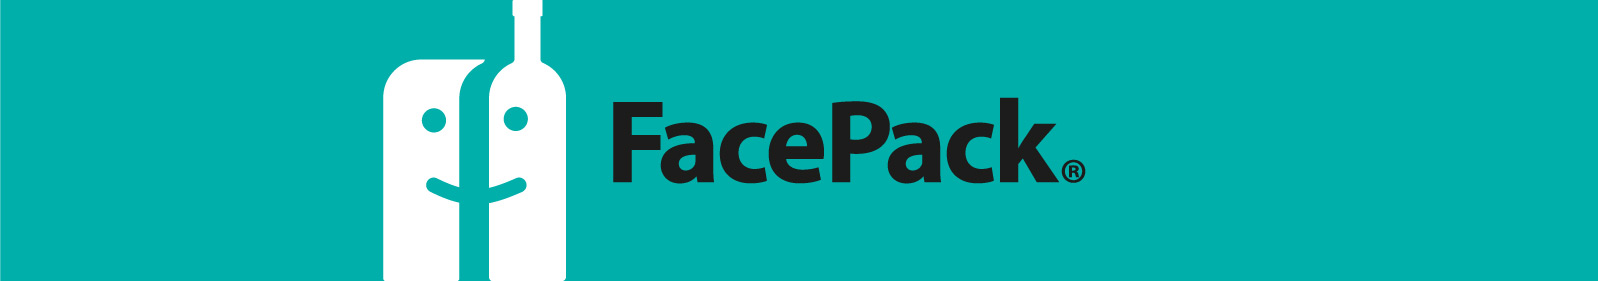 Facepack - Επικοινωνία face to face προϊόντος και καταναλωτή